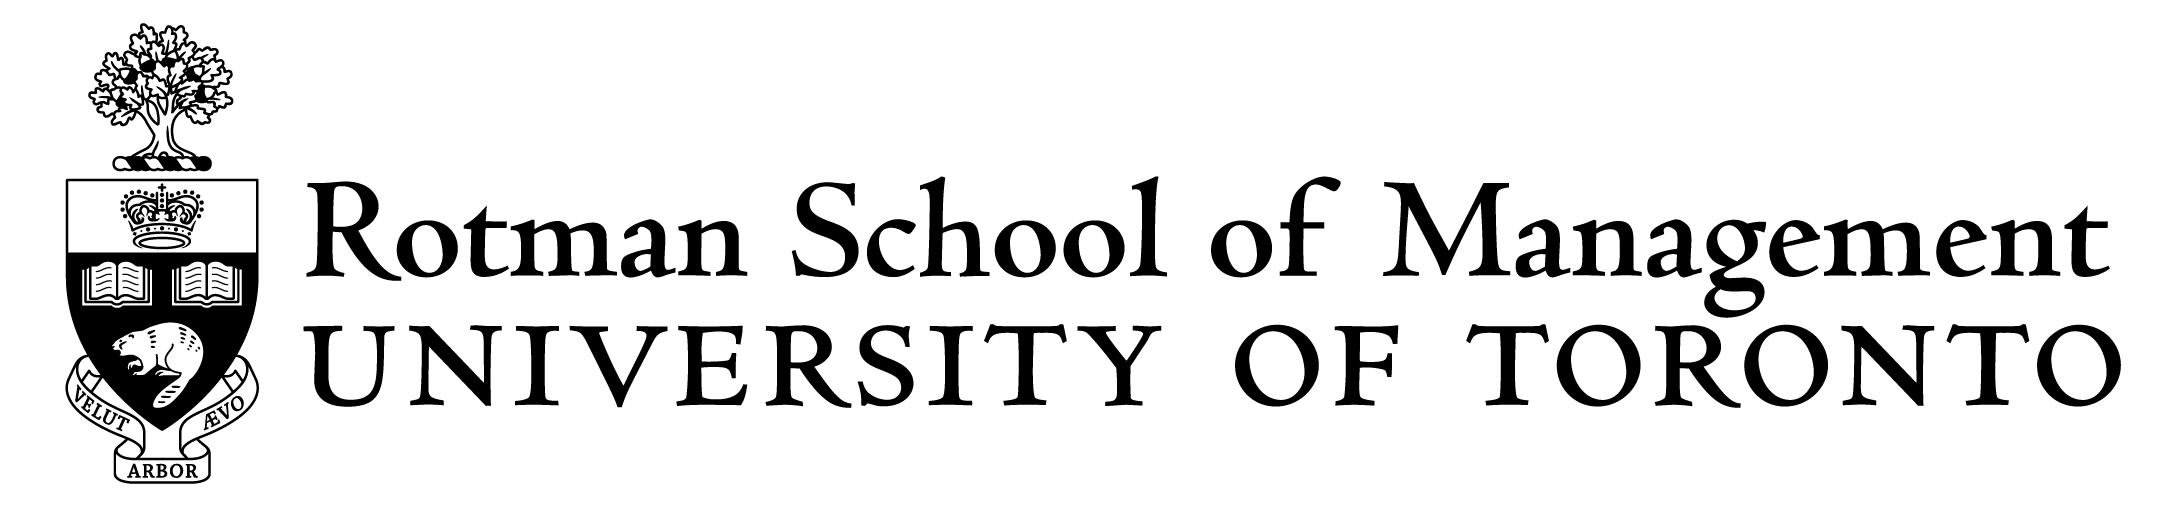 Rotman Crest - black(for White backgrounds).png